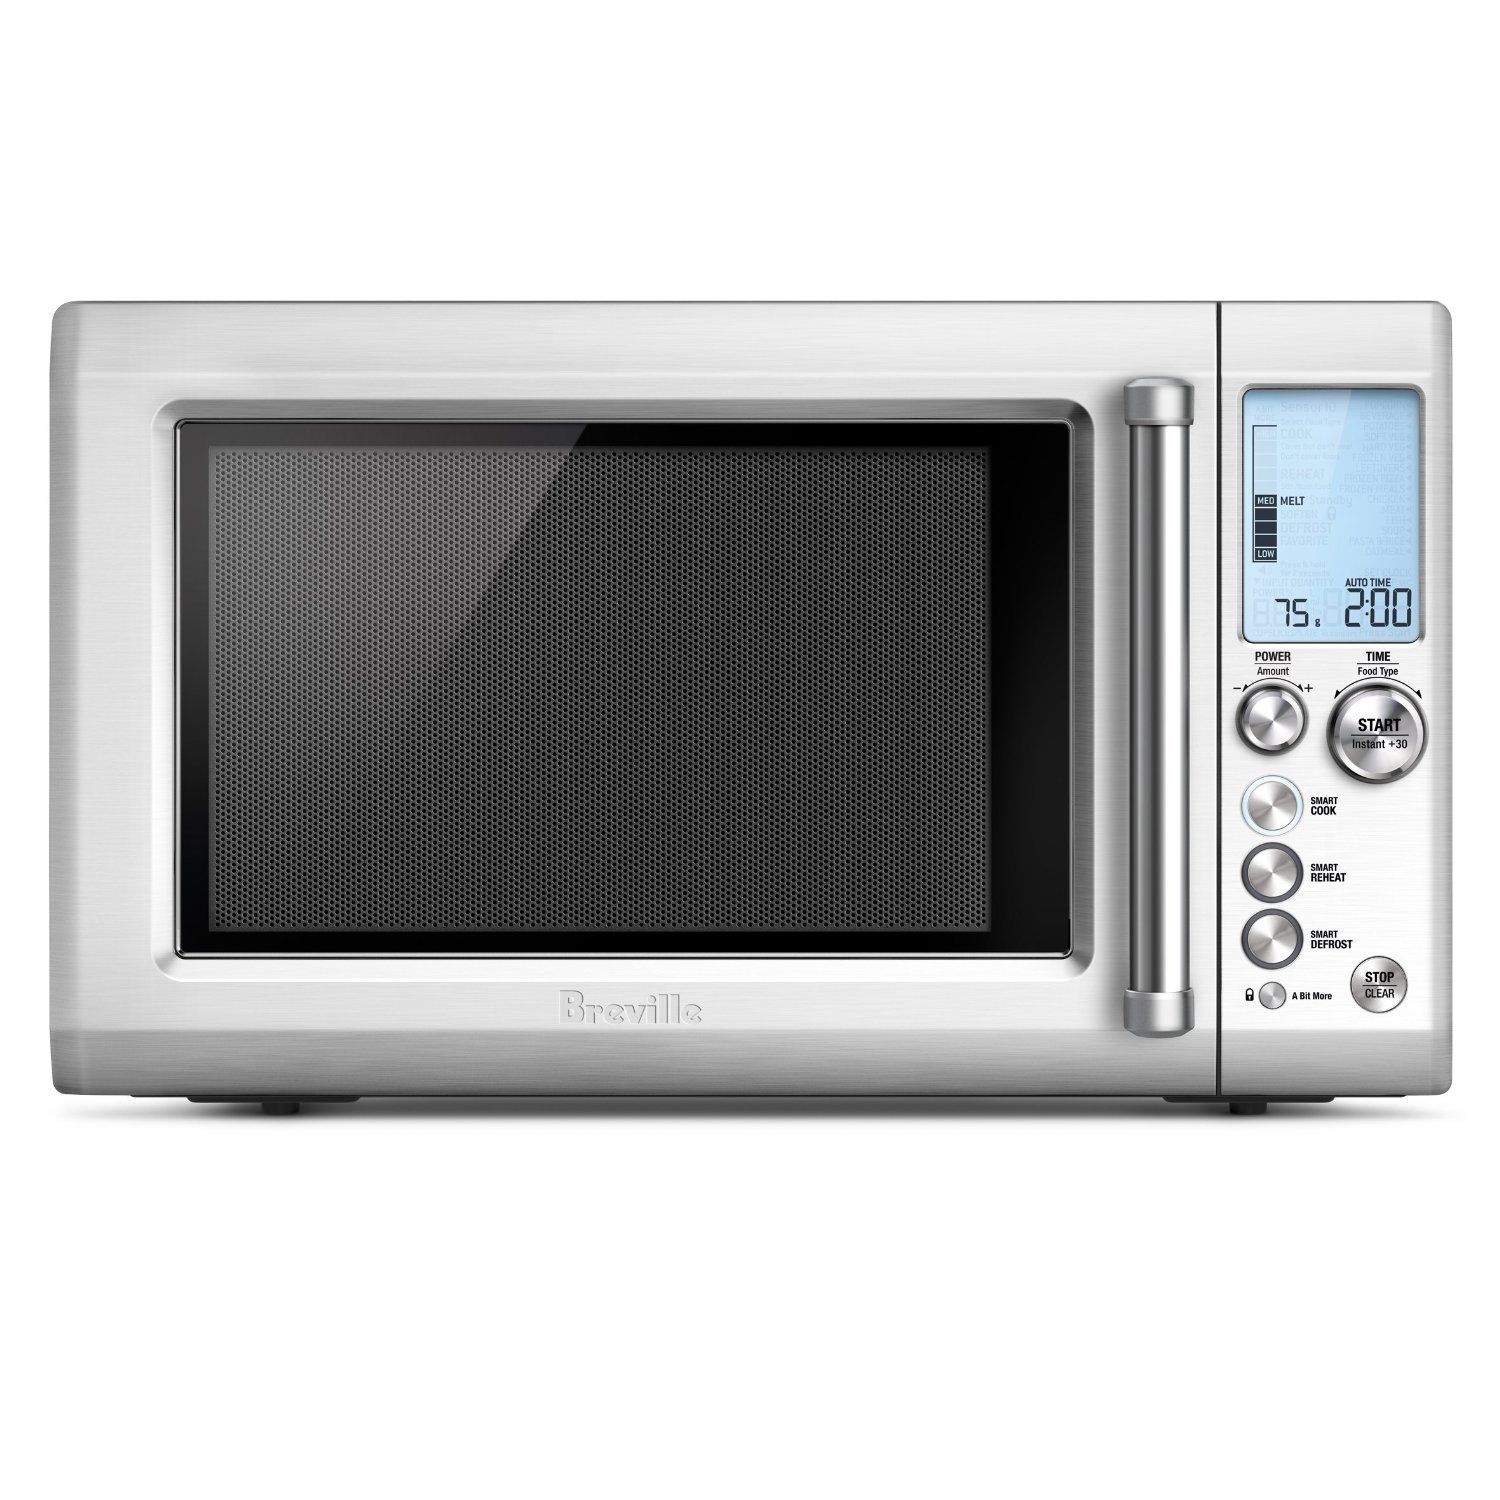 good microwave overview. no sources. but seems accurate from my research.